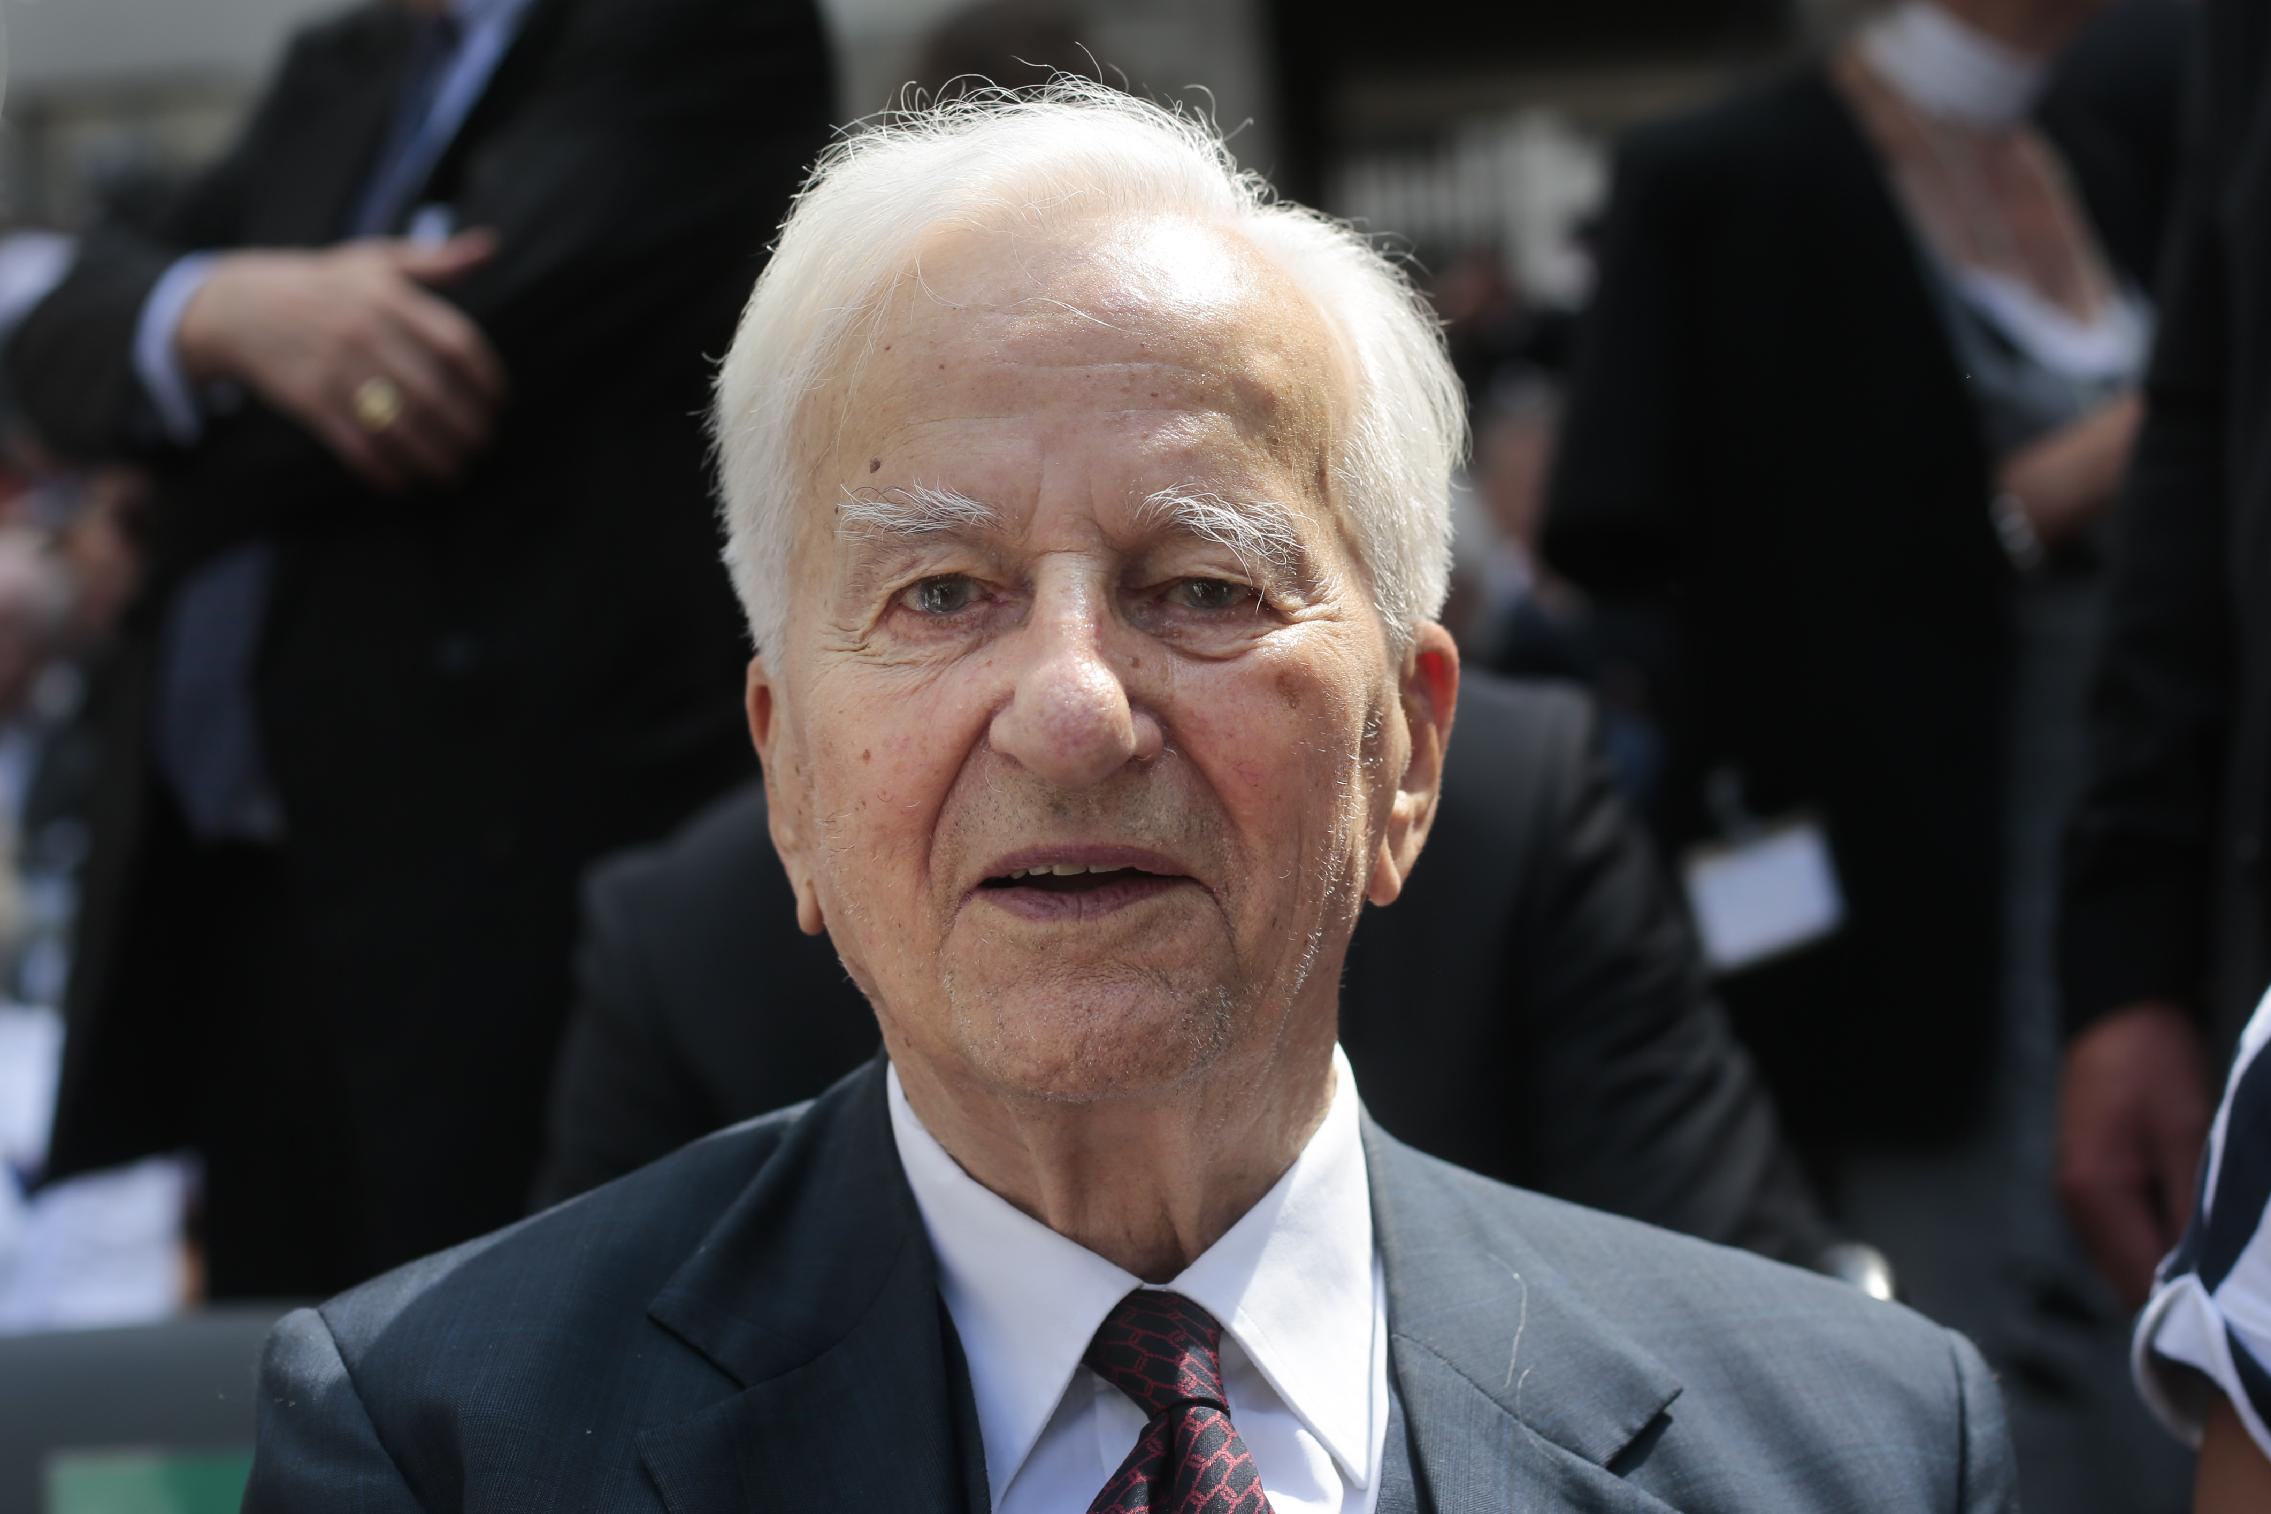 Former German president Richard von Weizsaecker dies at 94